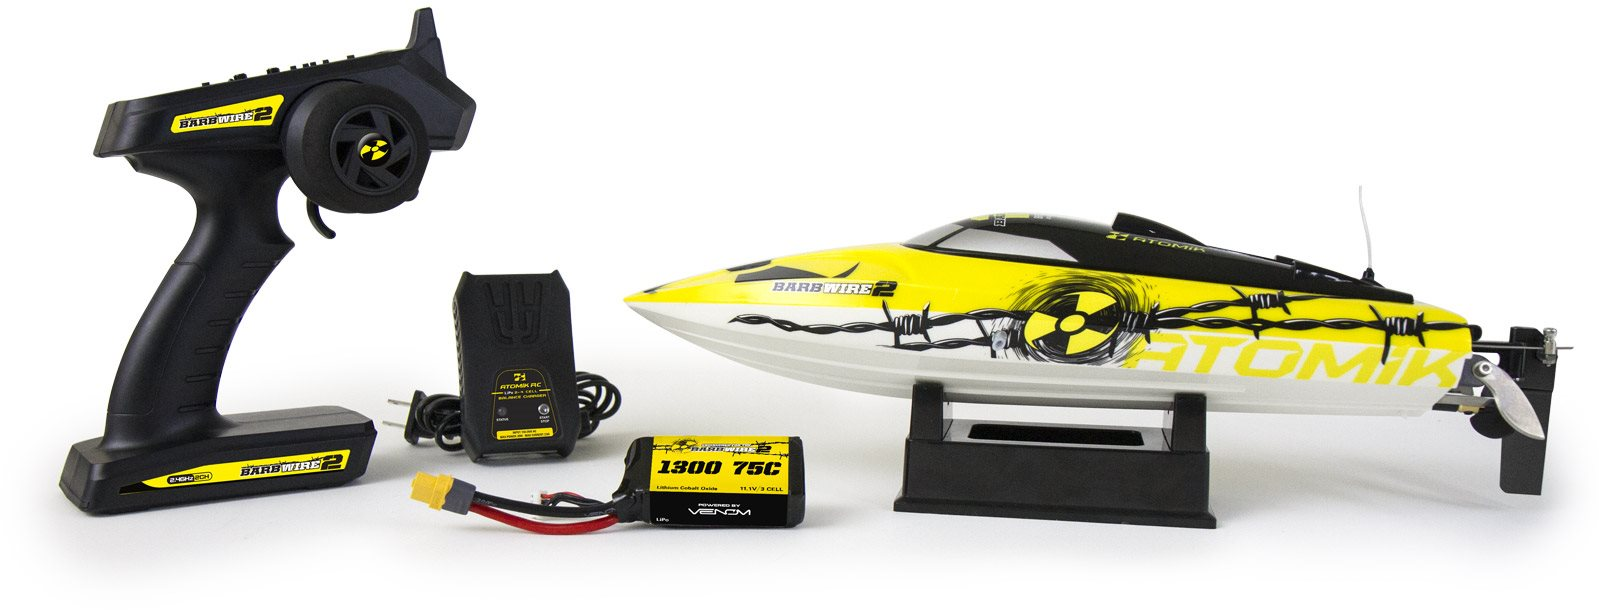 Atomik Barbwire 2 Rtr Brushless Racing Boat